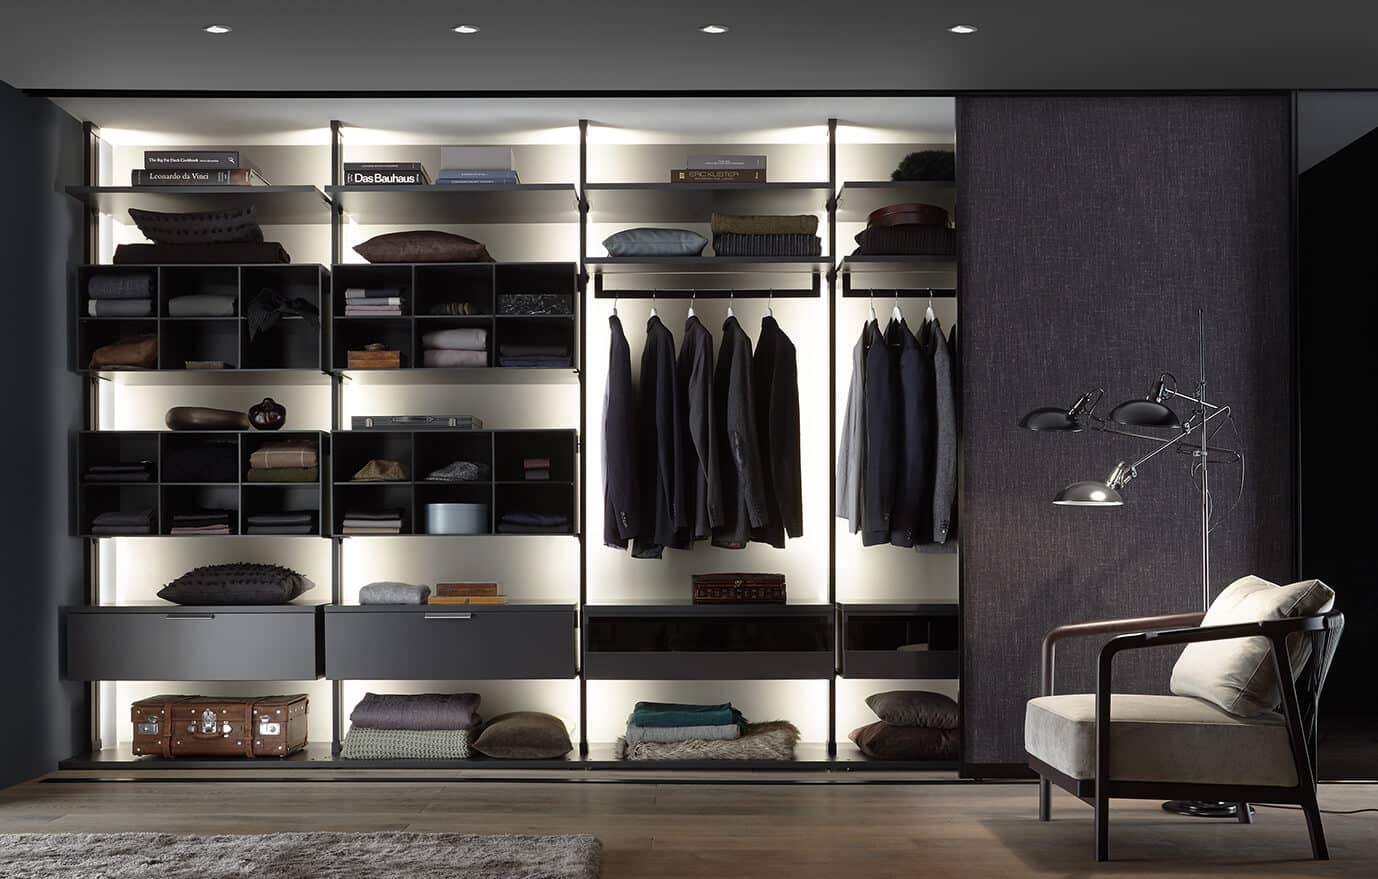 This picture depicts a living room with a shelving system that contains many compartments and offers several options to store clothing.